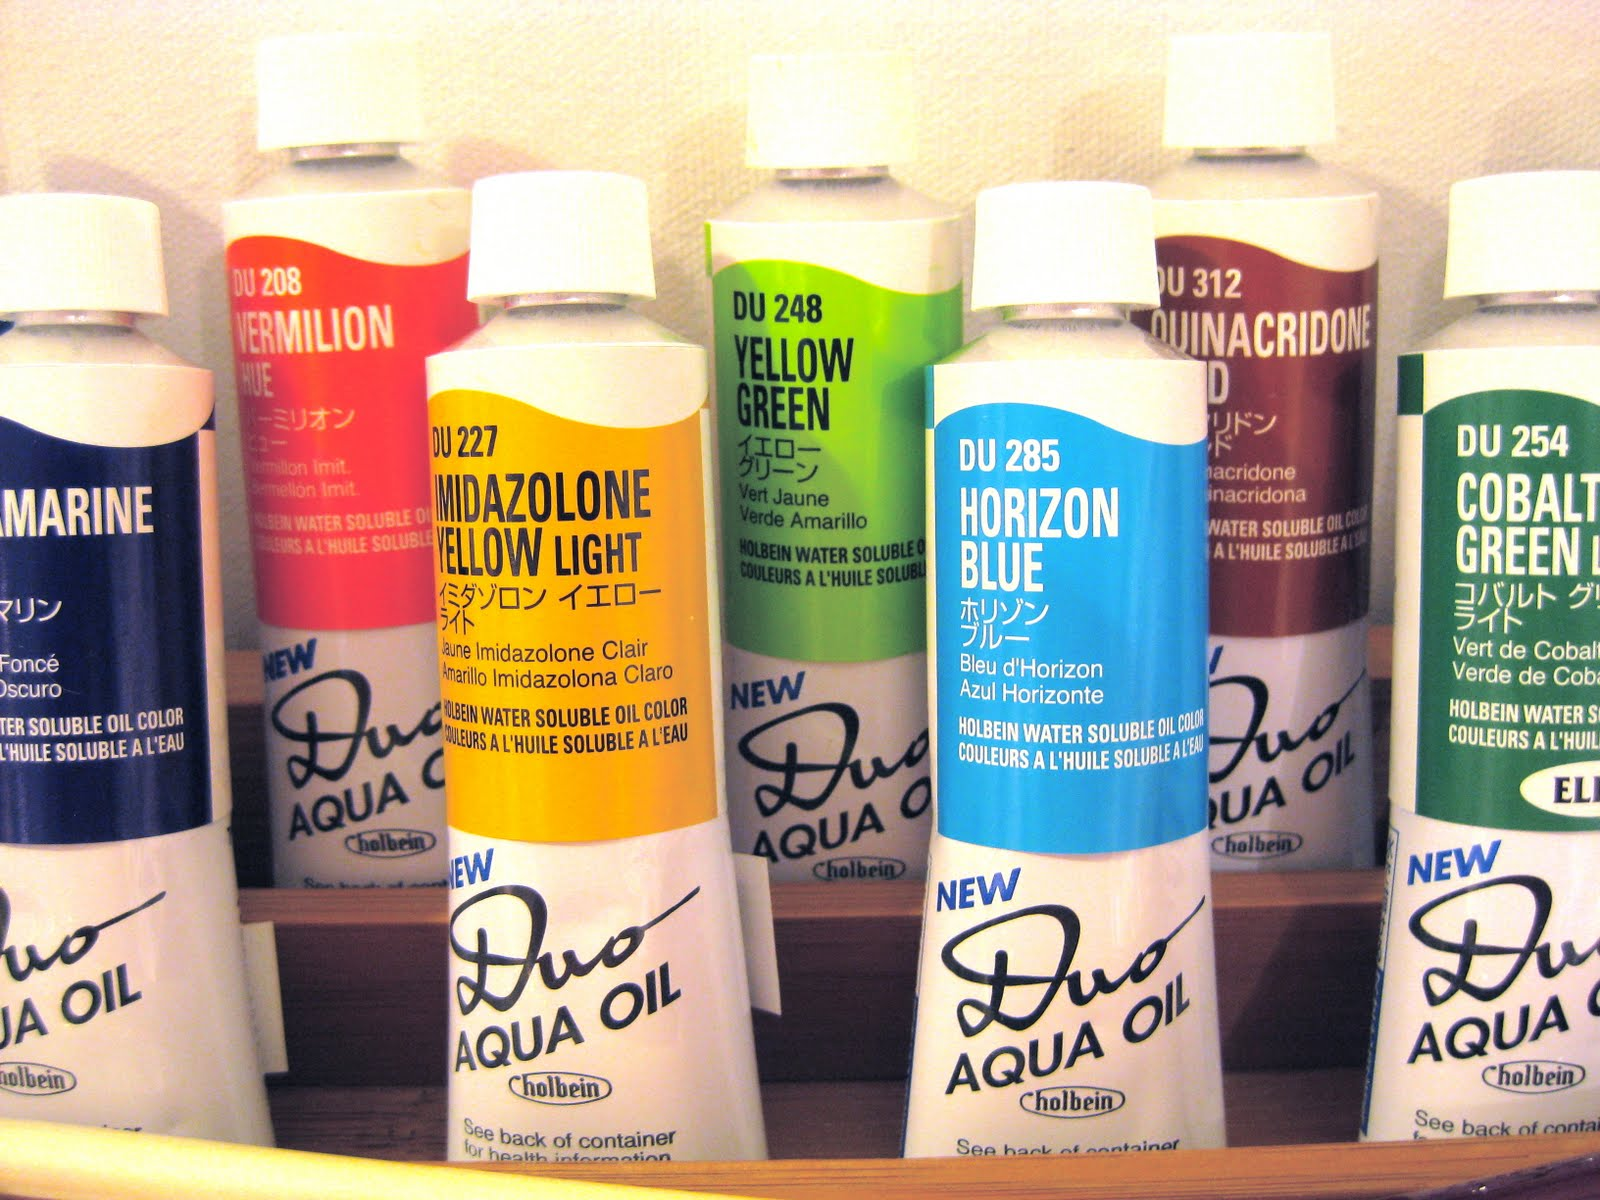 Albright art supply new duo aqua oil colors to see the full color range of the duo aqua oil paints visit httpholbeinhkchartsml and click on the duo aqua link at the bottom left corner nvjuhfo Choice Image